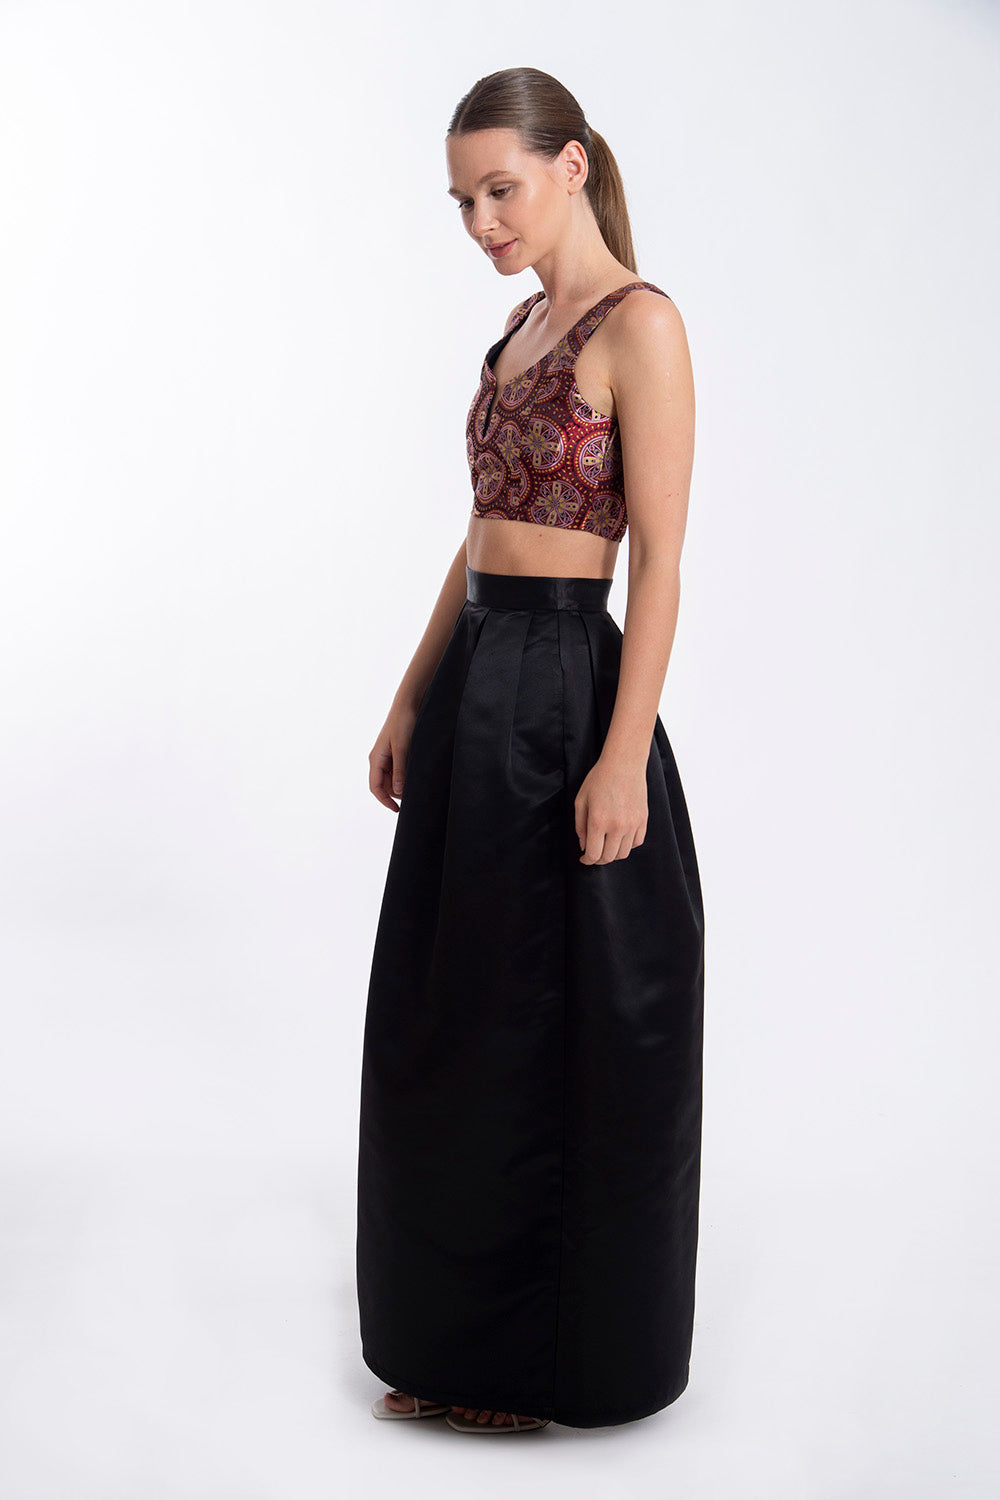 Glamorous barroque cropped top